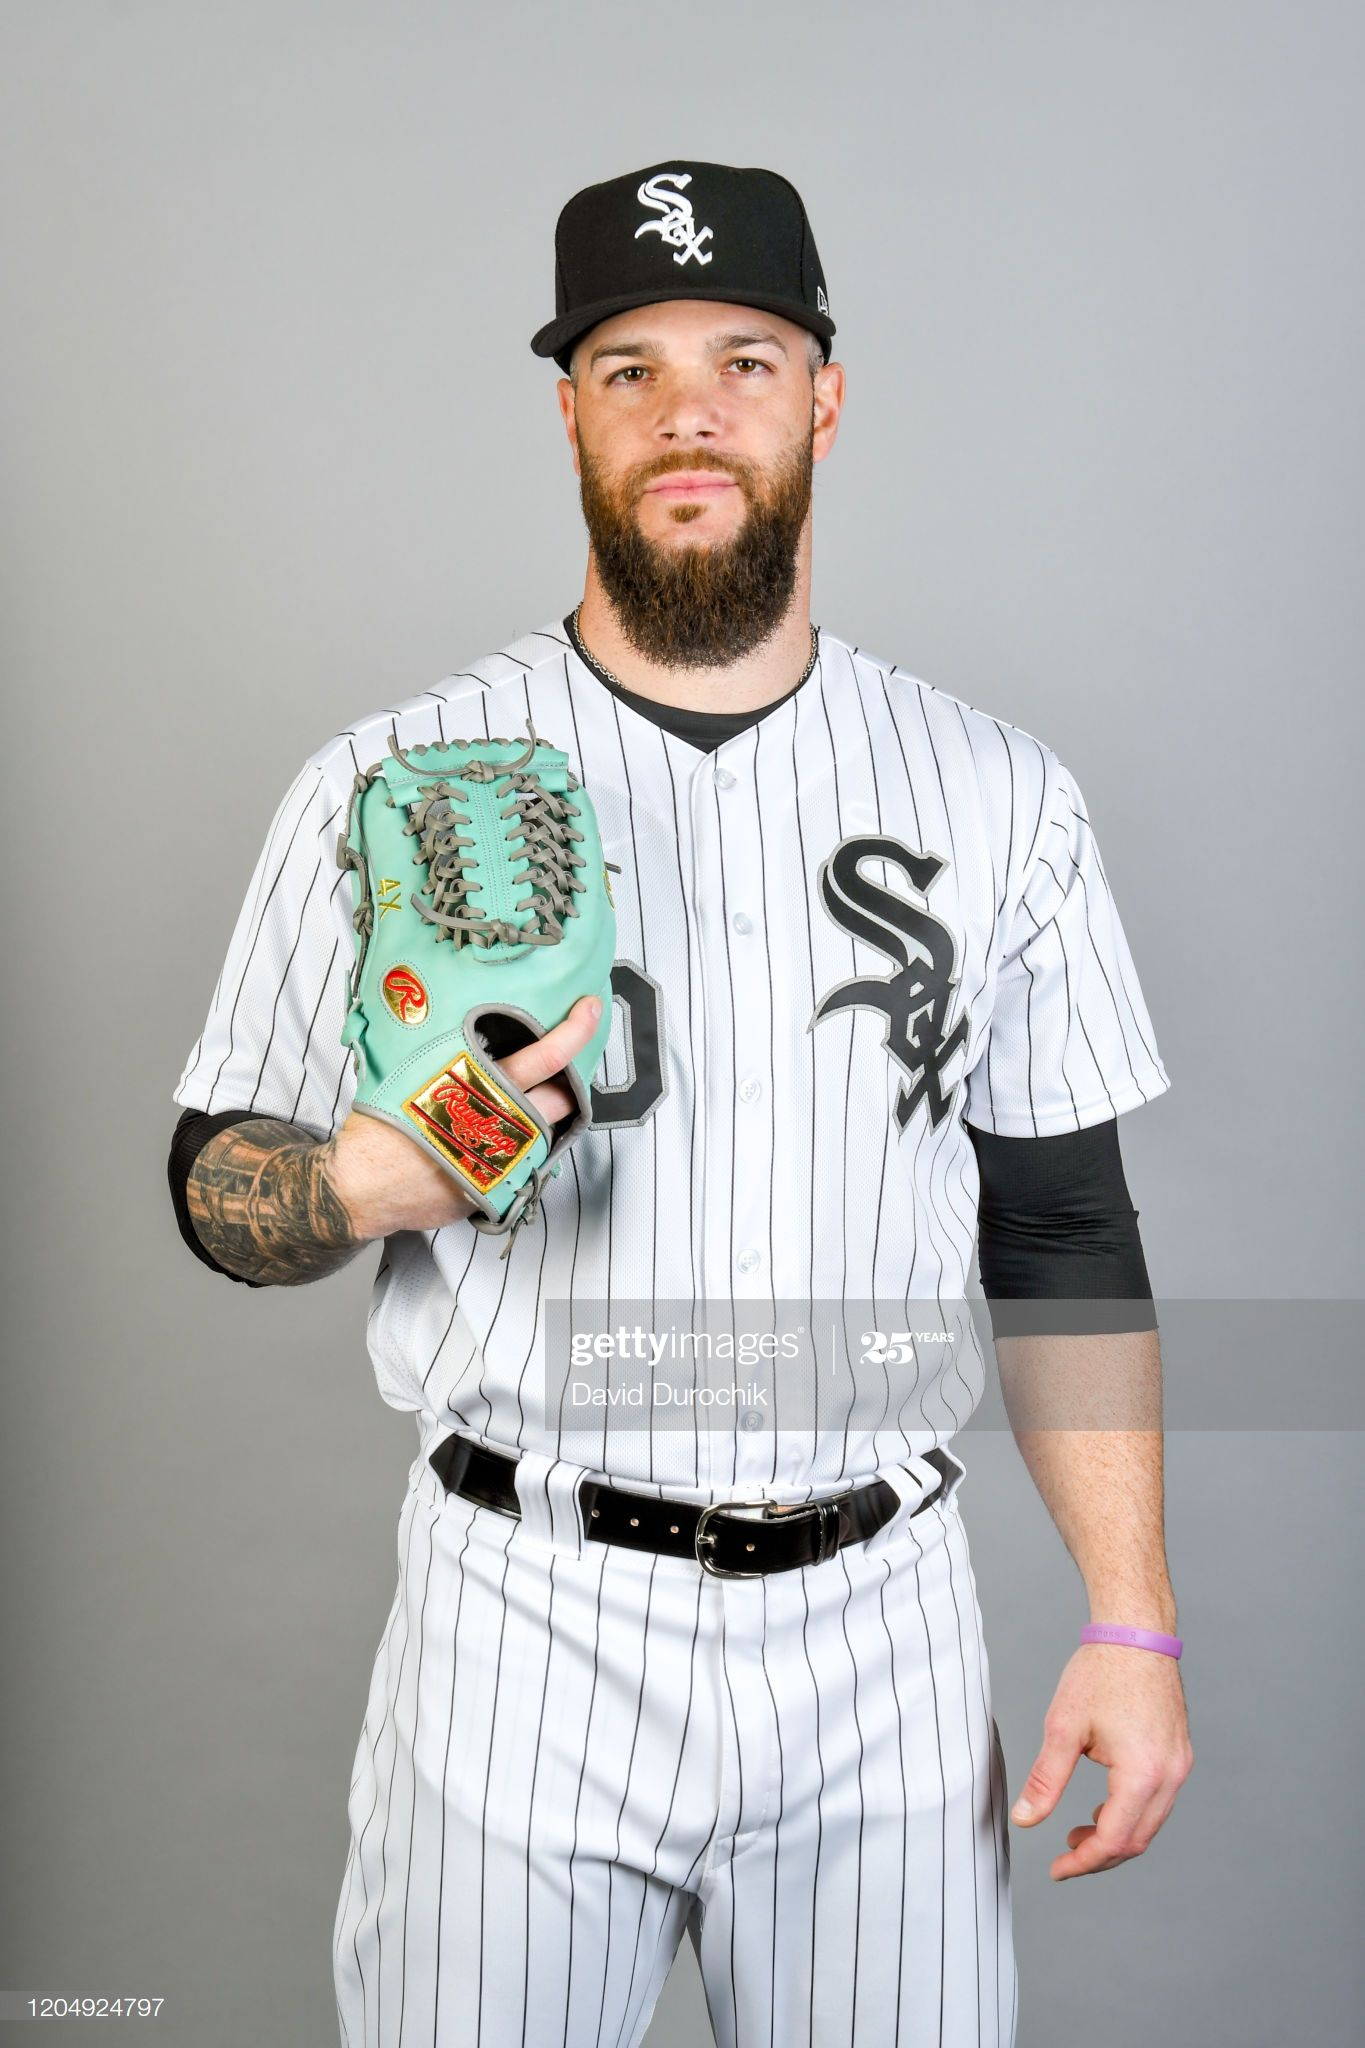 Dallas Keuchel Of The Chicago White Sox Poses During Photo Day On In 2020 Chicago White Sox White Sock Dallas Keuchel